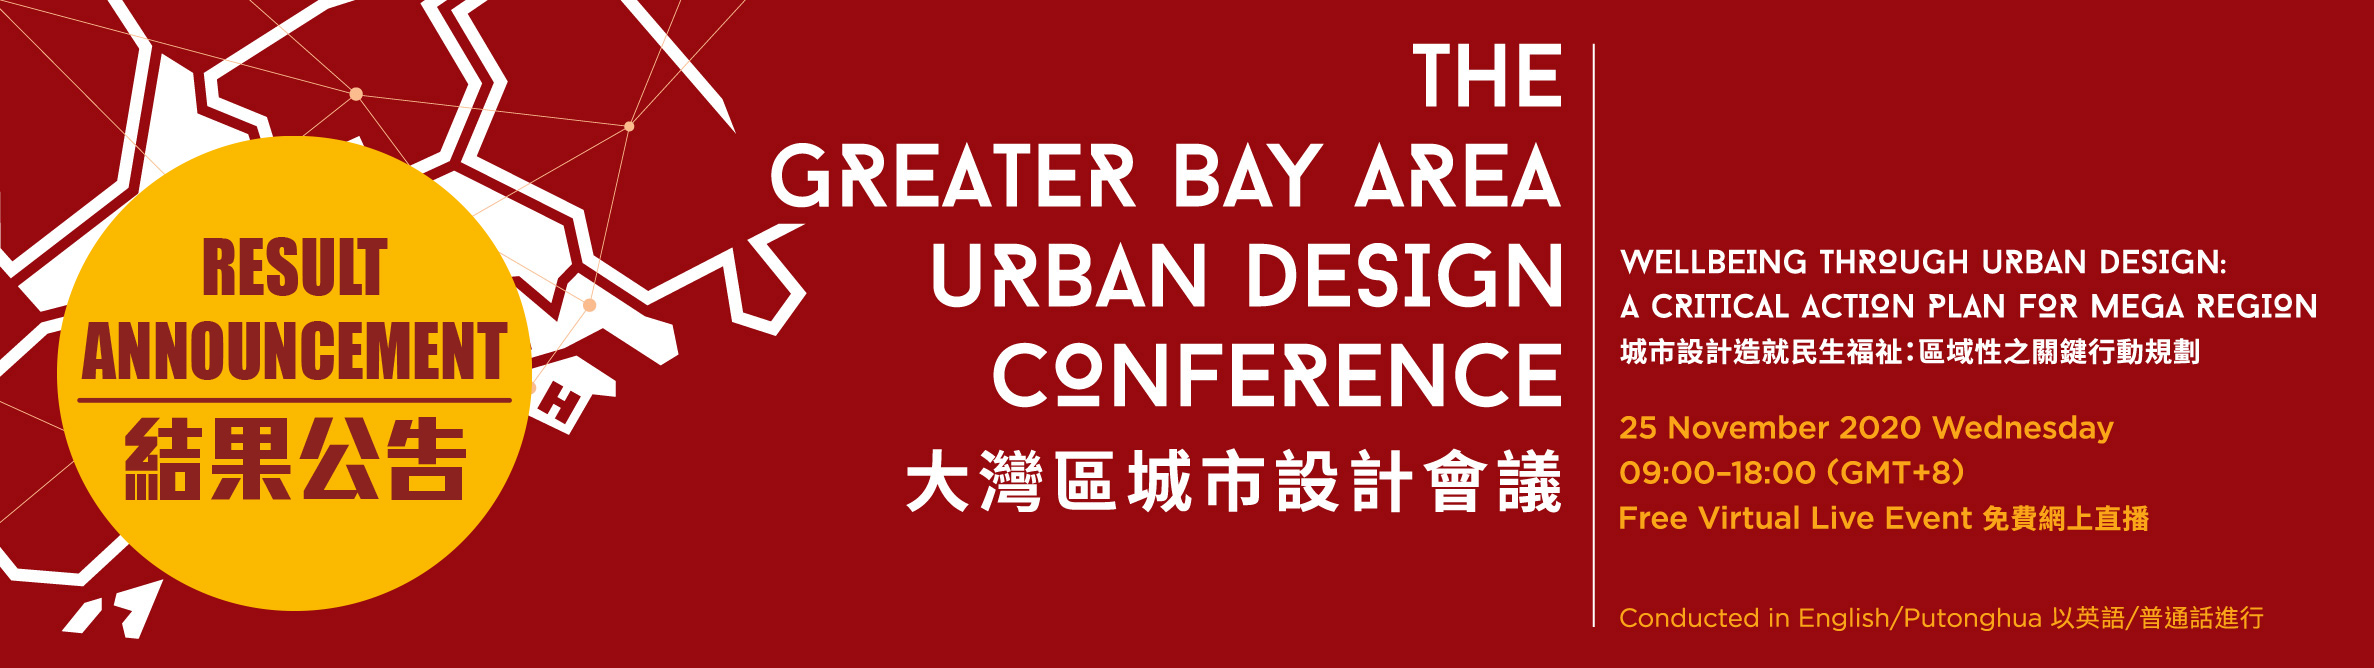 The Greater Bay Area Urban Design Conference 2020